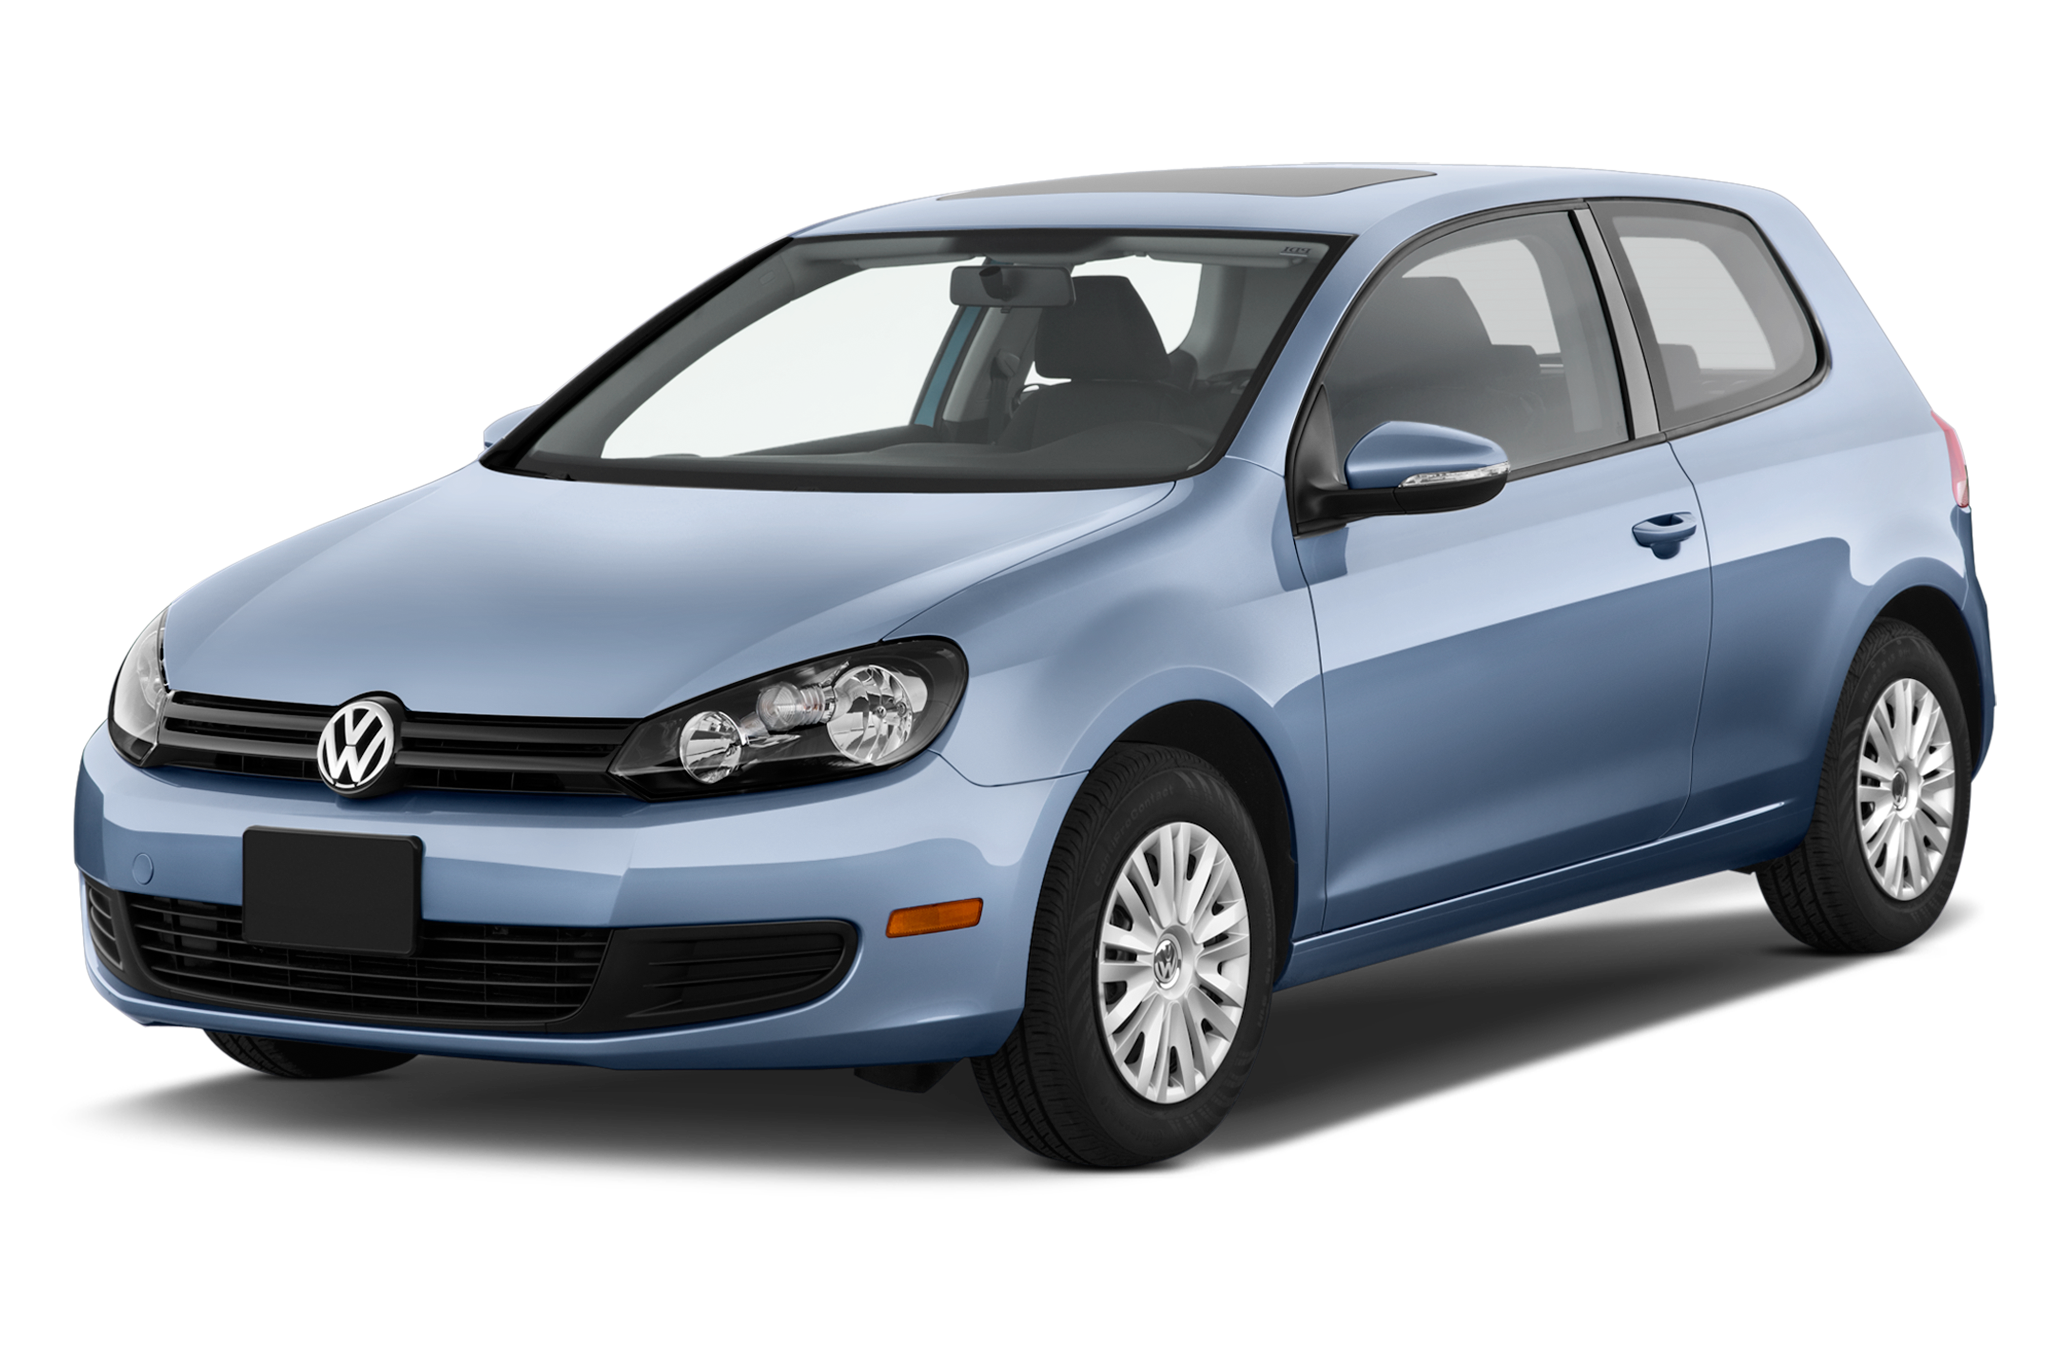 2010 volkswagen golf tdi volkswagen diesel hatchback review automobile magazine. Black Bedroom Furniture Sets. Home Design Ideas